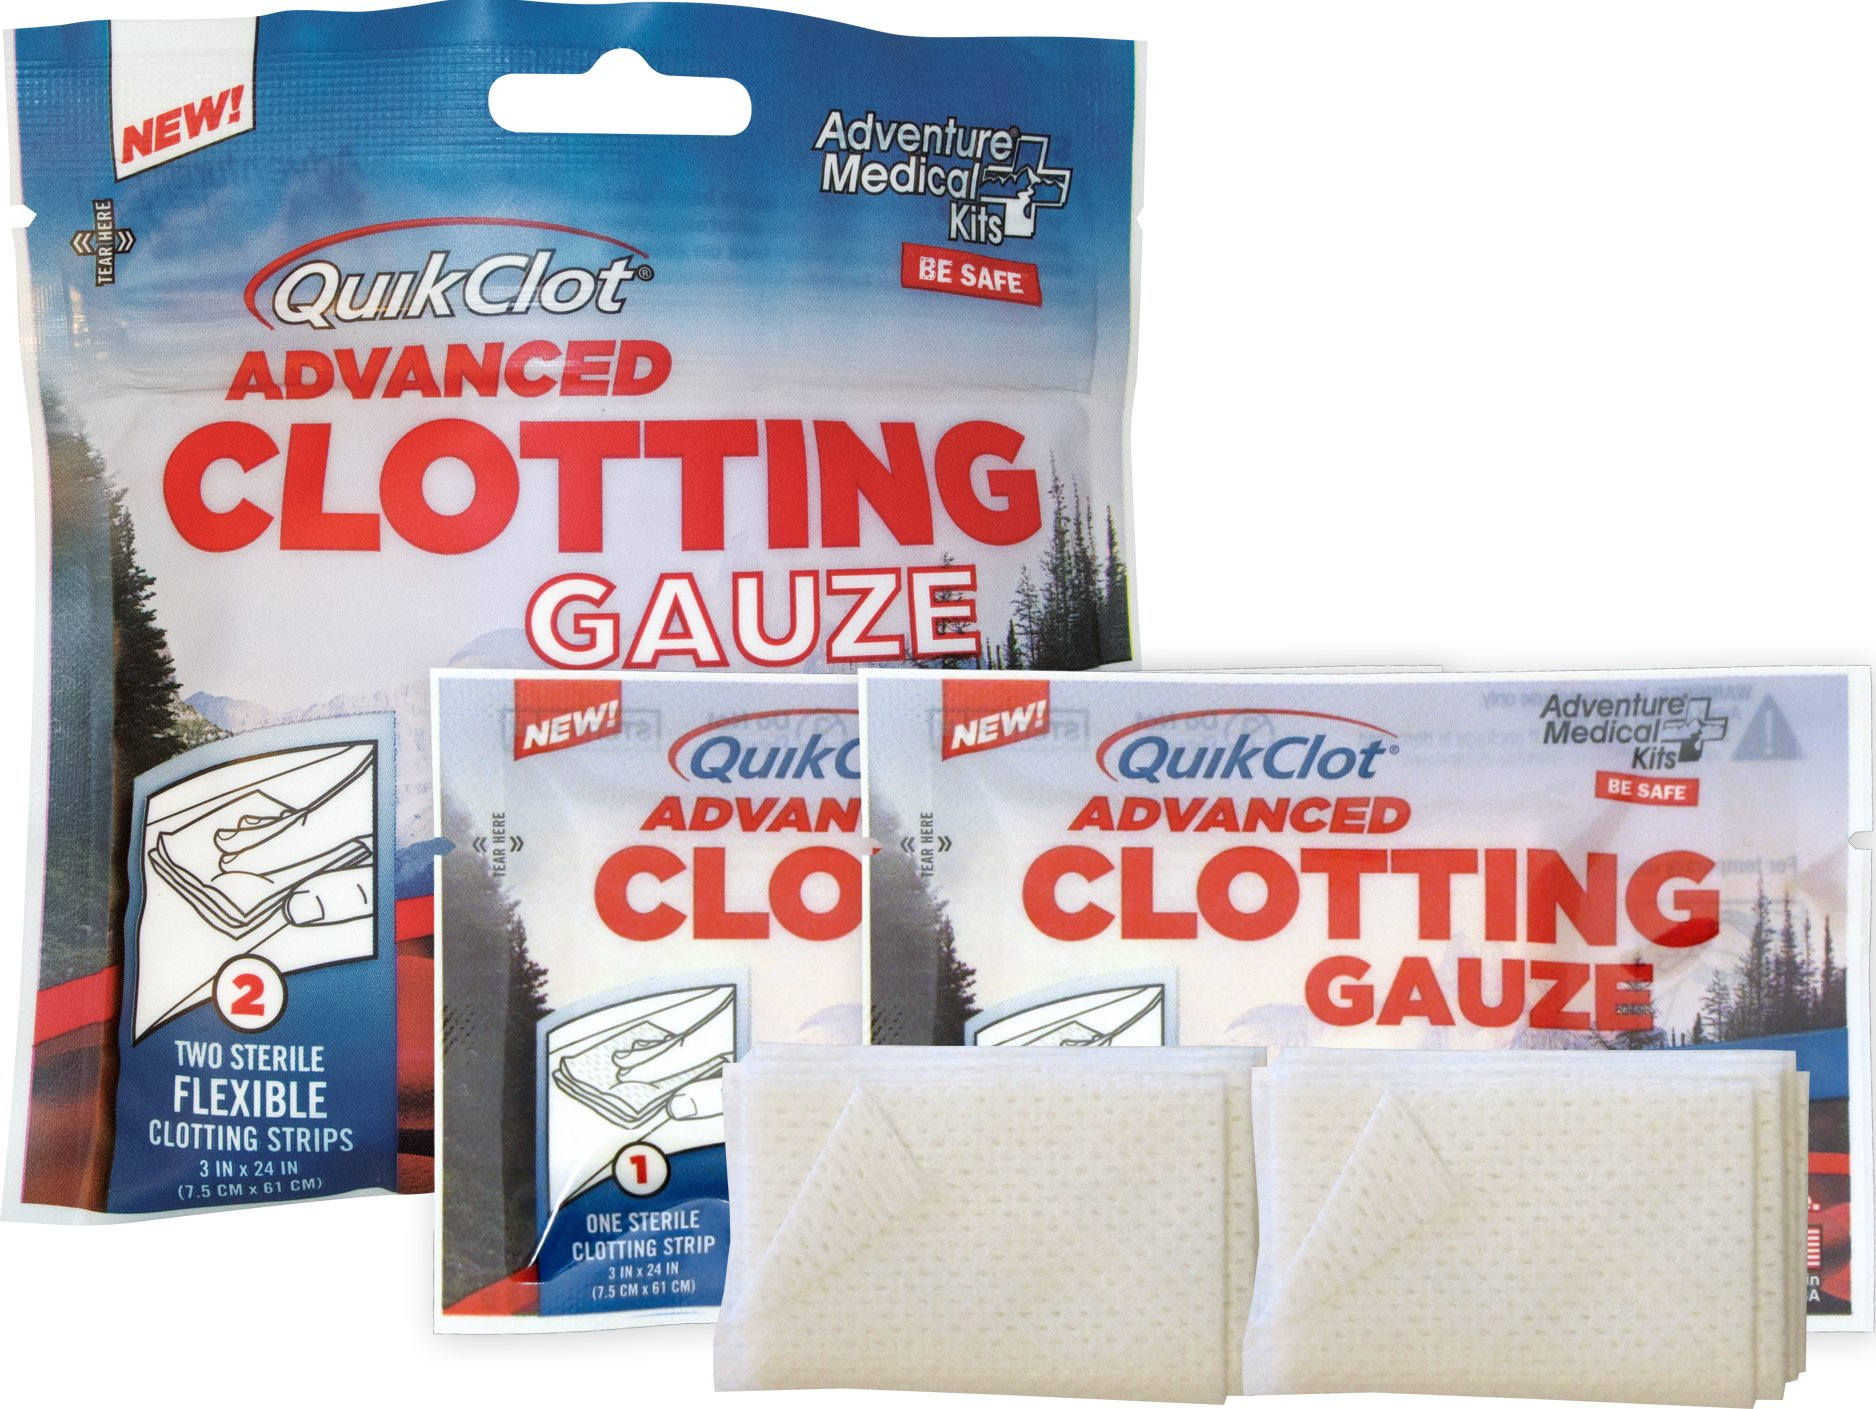 "QuikClot Advanced Clotting Gauze with Kaolin, Two 3"" x 24"" Gauze Strips – First Aid Hemostatic Gauze from Adventure Medical Kits, Quik Clot Combat Gauze, Blood Clotting Dressing, Stop Bleeding Fast"